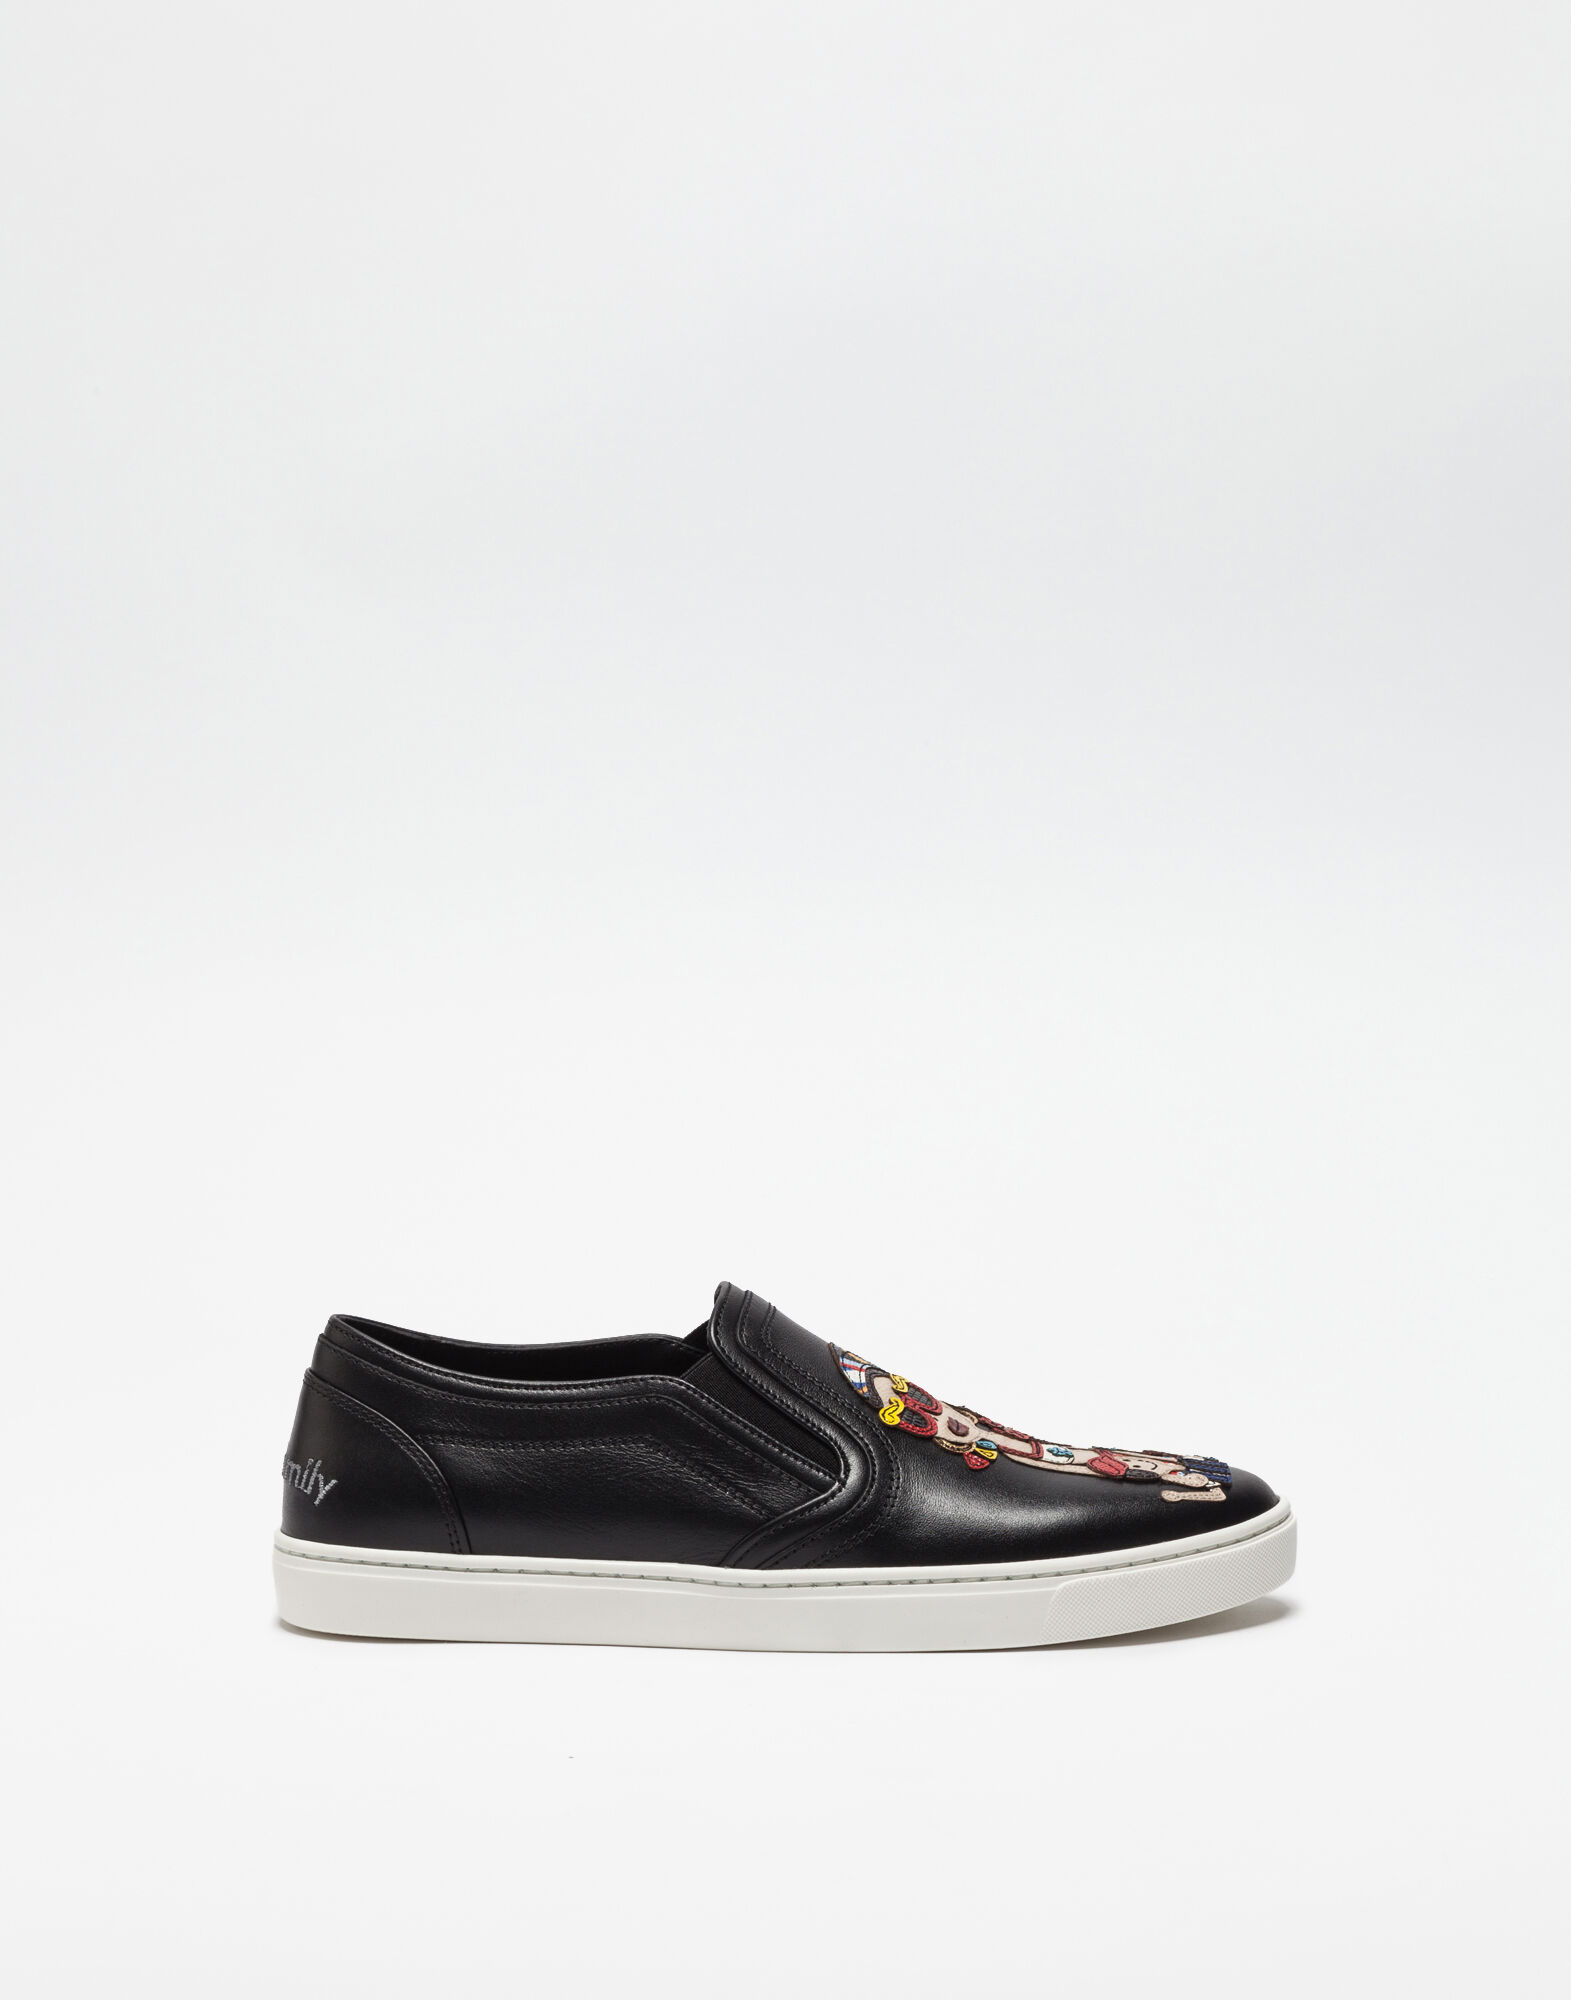 SLIP ON SNEAKERS WITH DG FAMILY PATCH AND APPLICATIONS